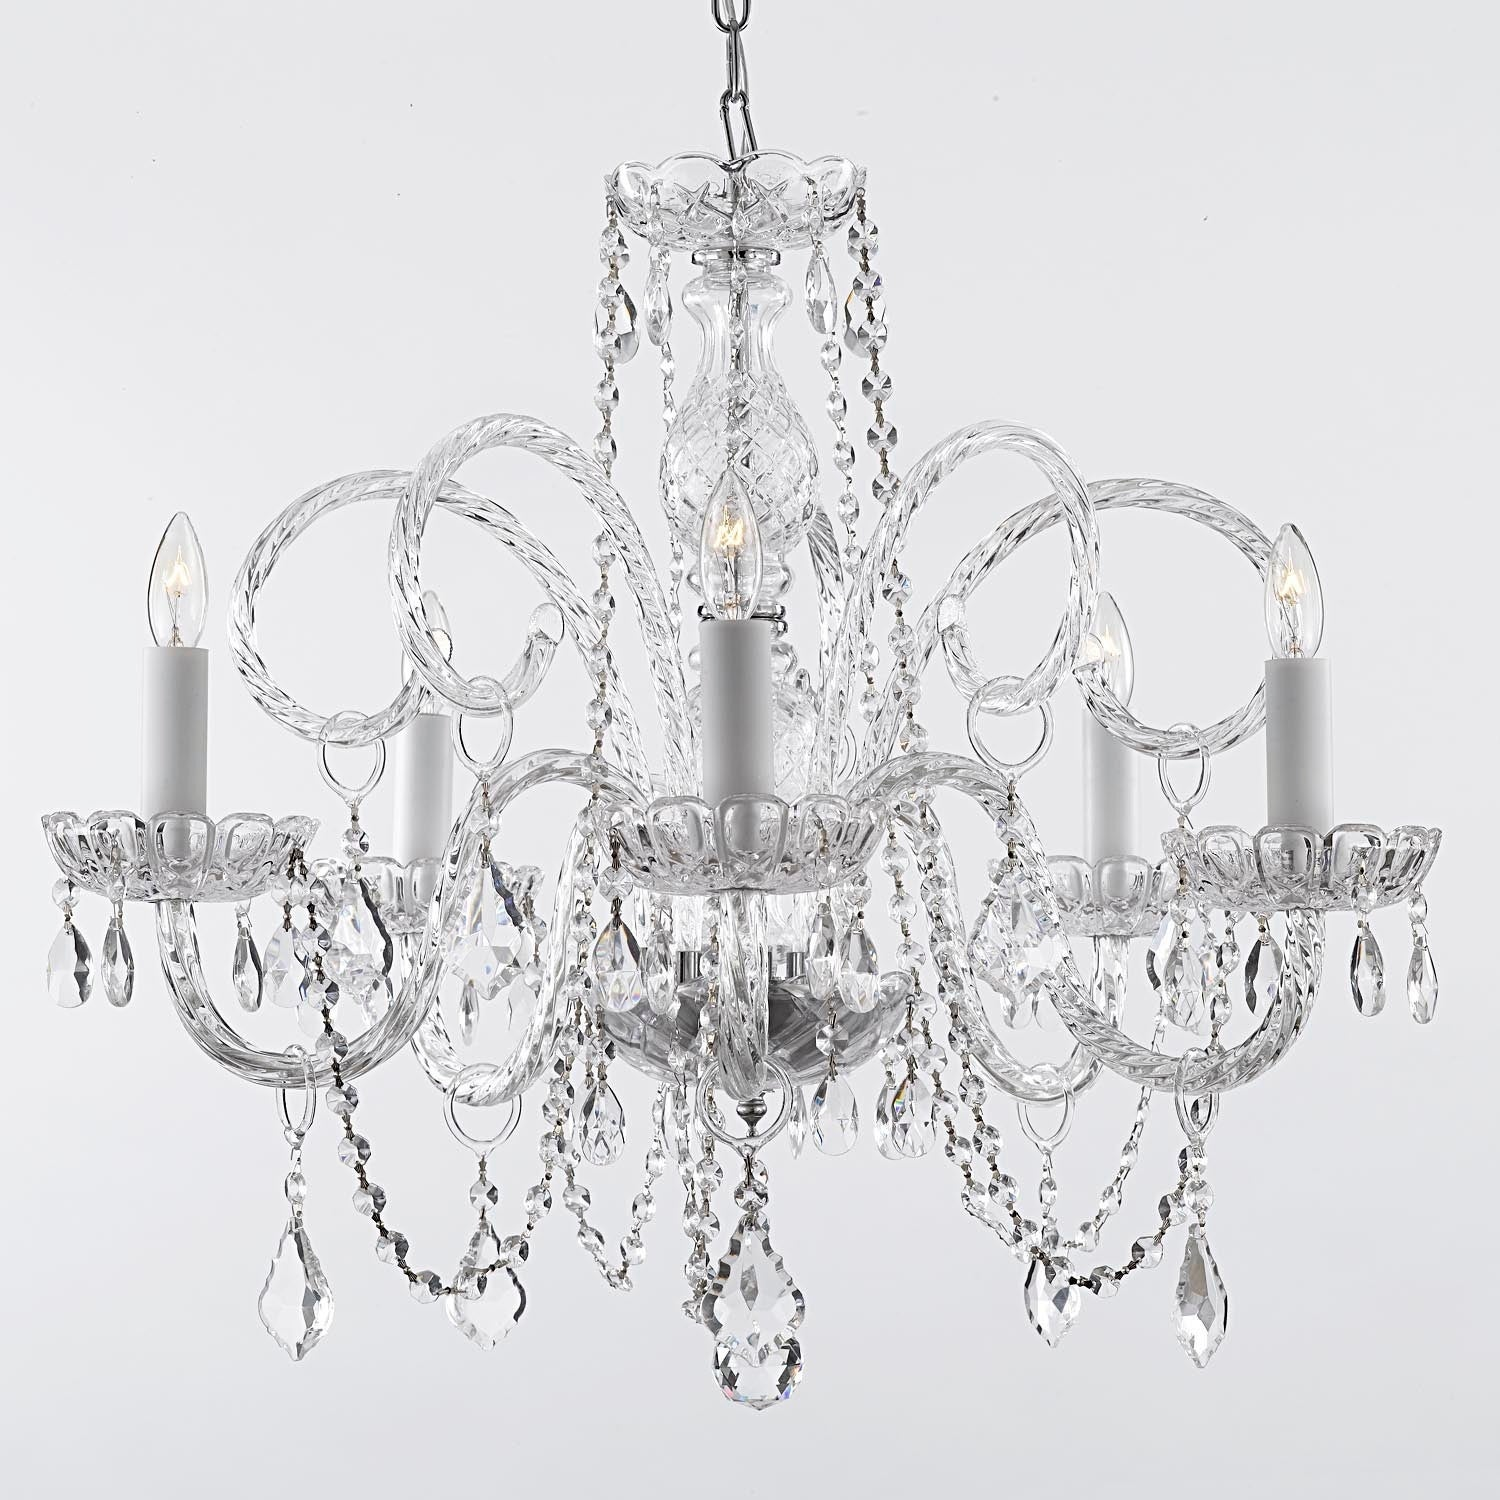 Swarovski Elements Crystal Trimmed French Empire Plug In Chandelier H25 x W24 - Thumbnail 0